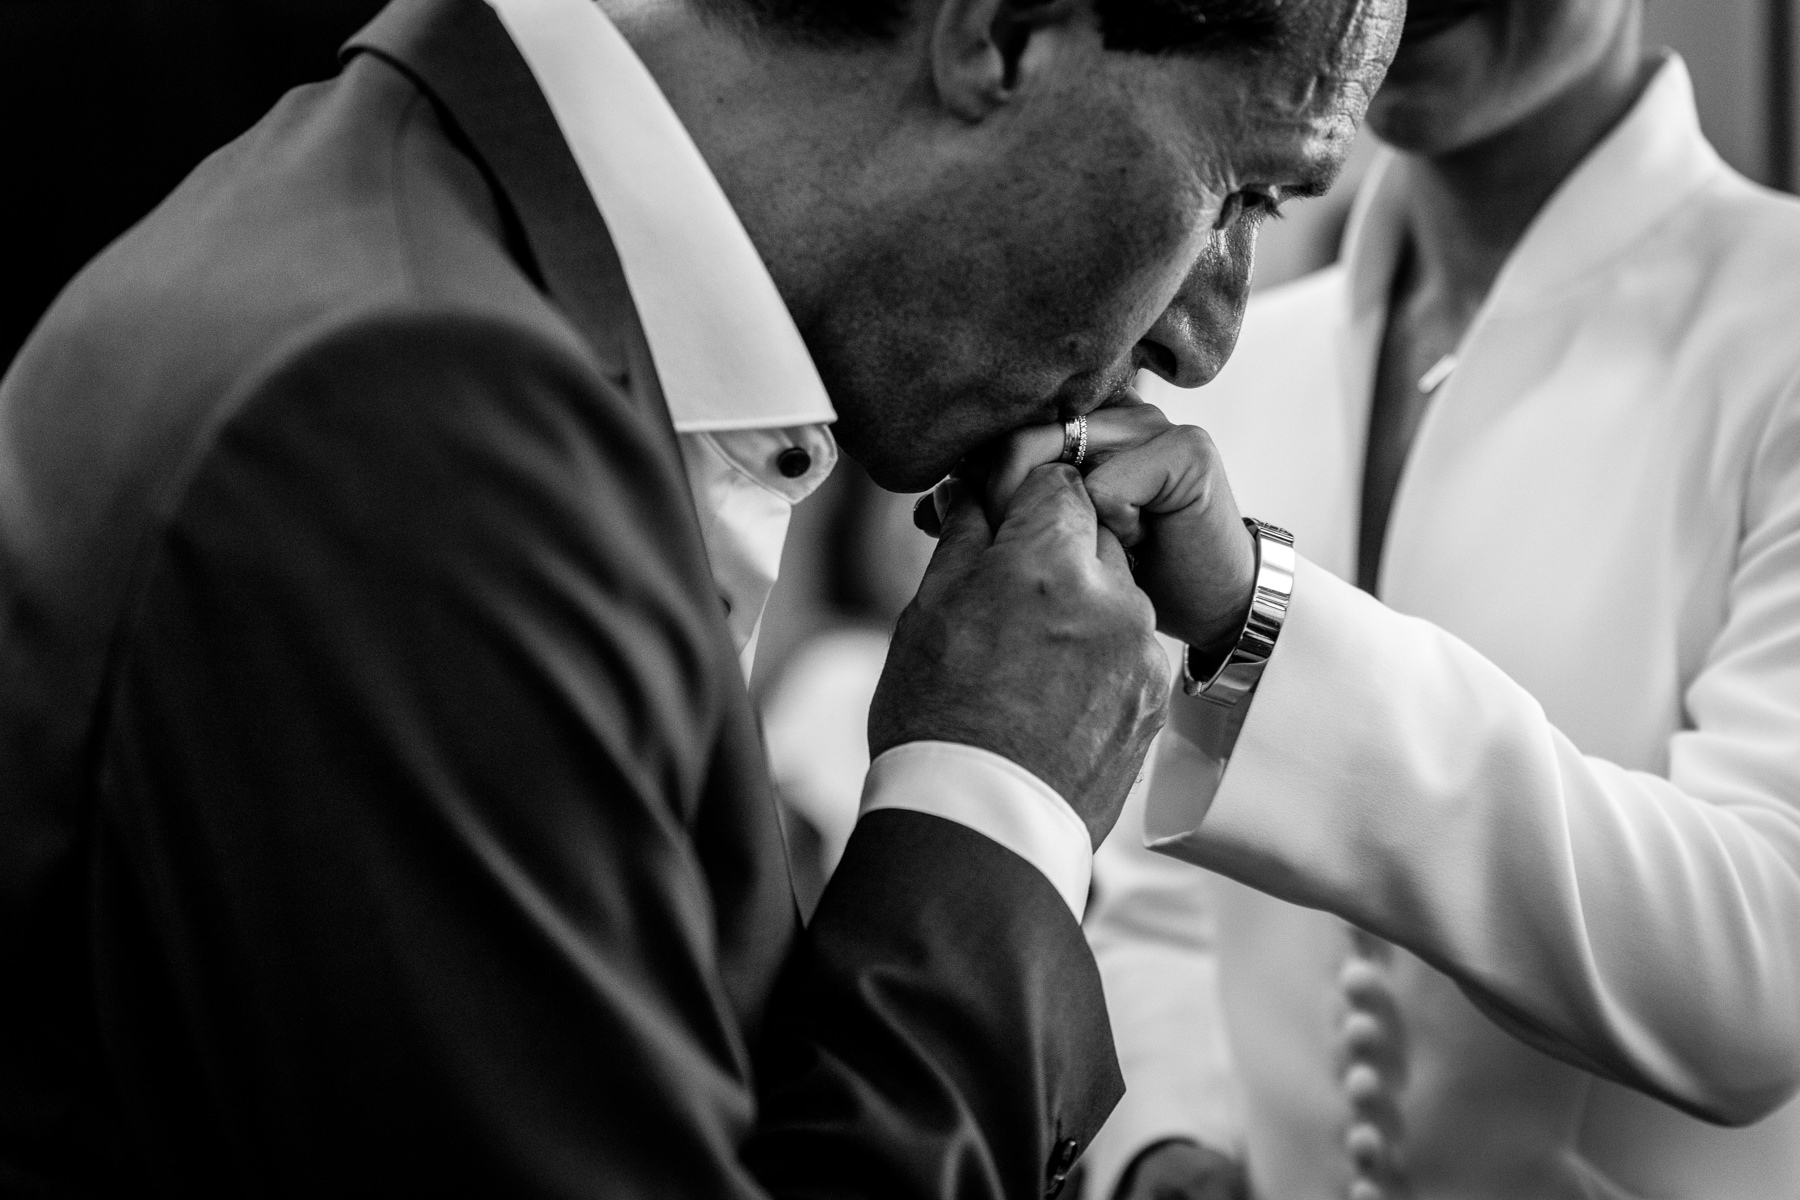 groom kissing bride hand wedding ring black&white image natural authentic documentary wedding photo bride groom couple beaverbrook surrey hills leatherhead register office wedding photographer